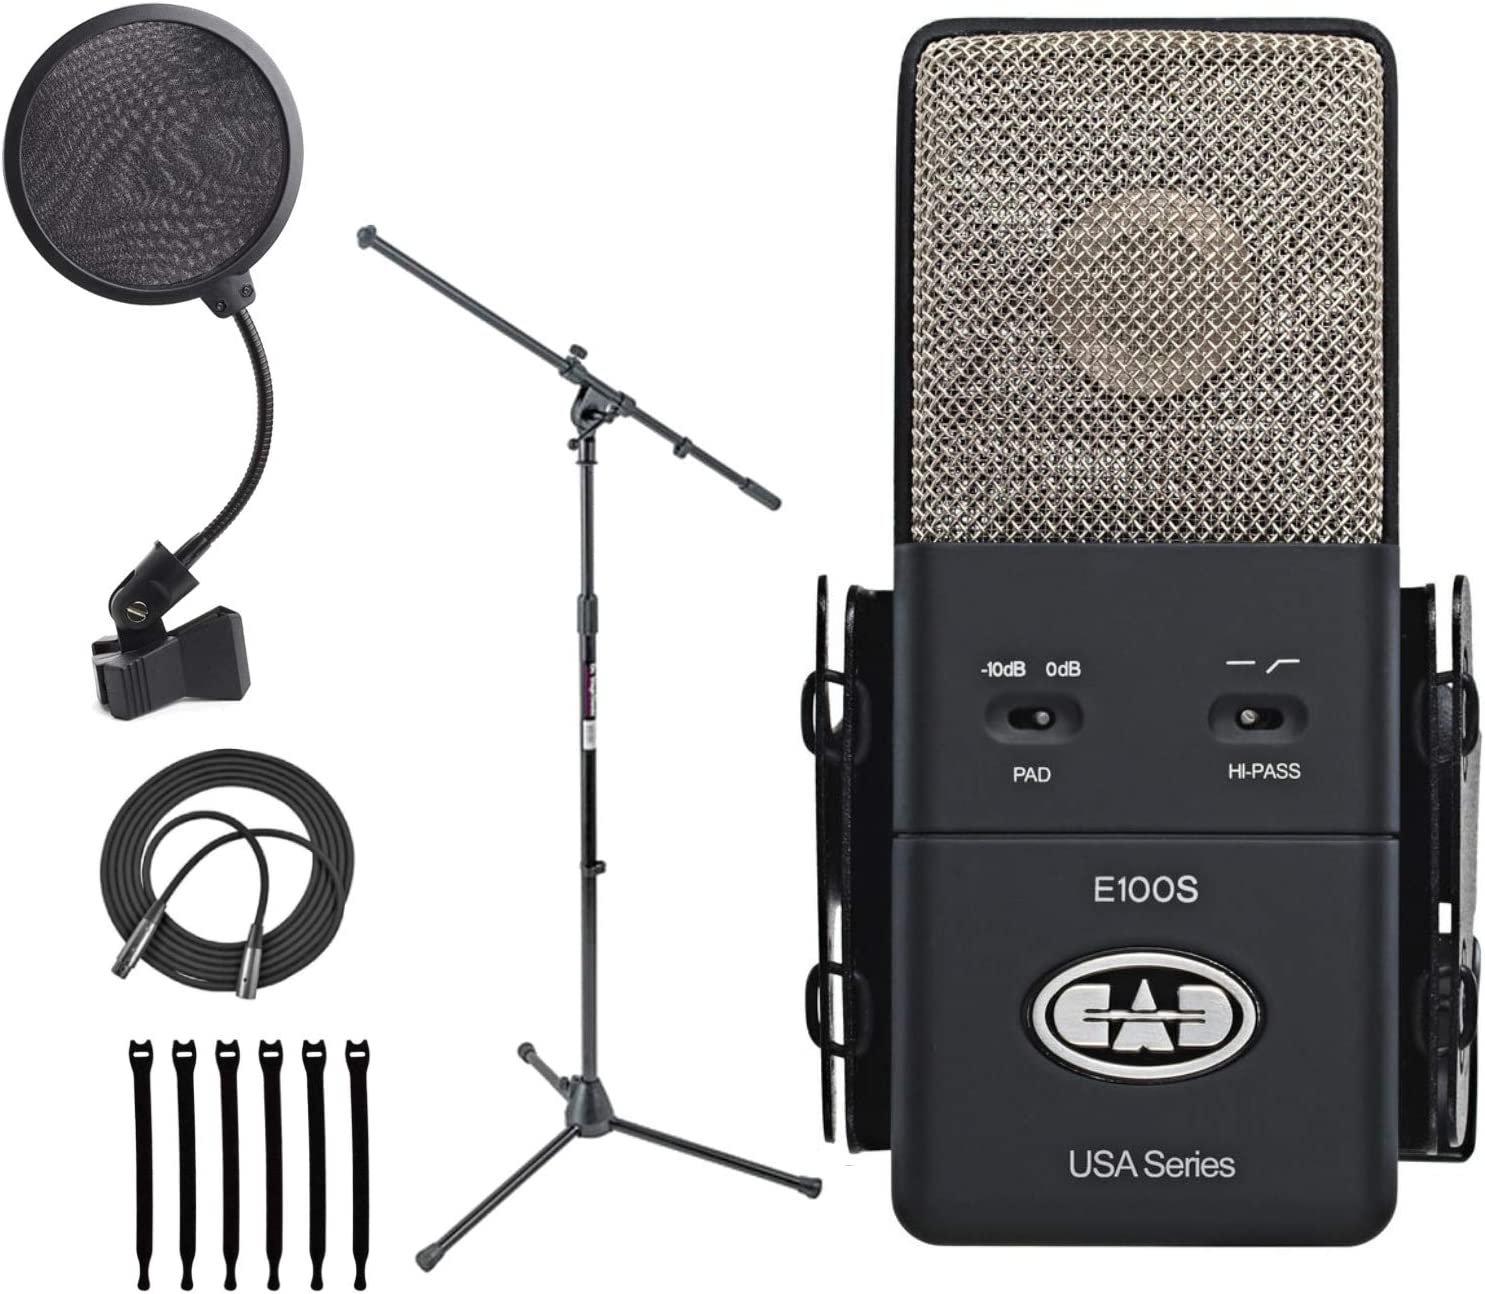 CAD Audio Equitek E100S Supercardioid Condenser Microphone + On Stage MS7701B Euro Boom Microphone Stand + On Stage ASVS4B 4-Inch Pop Filter + Op/Tech Strapeez, Black + Mic XLR Cable